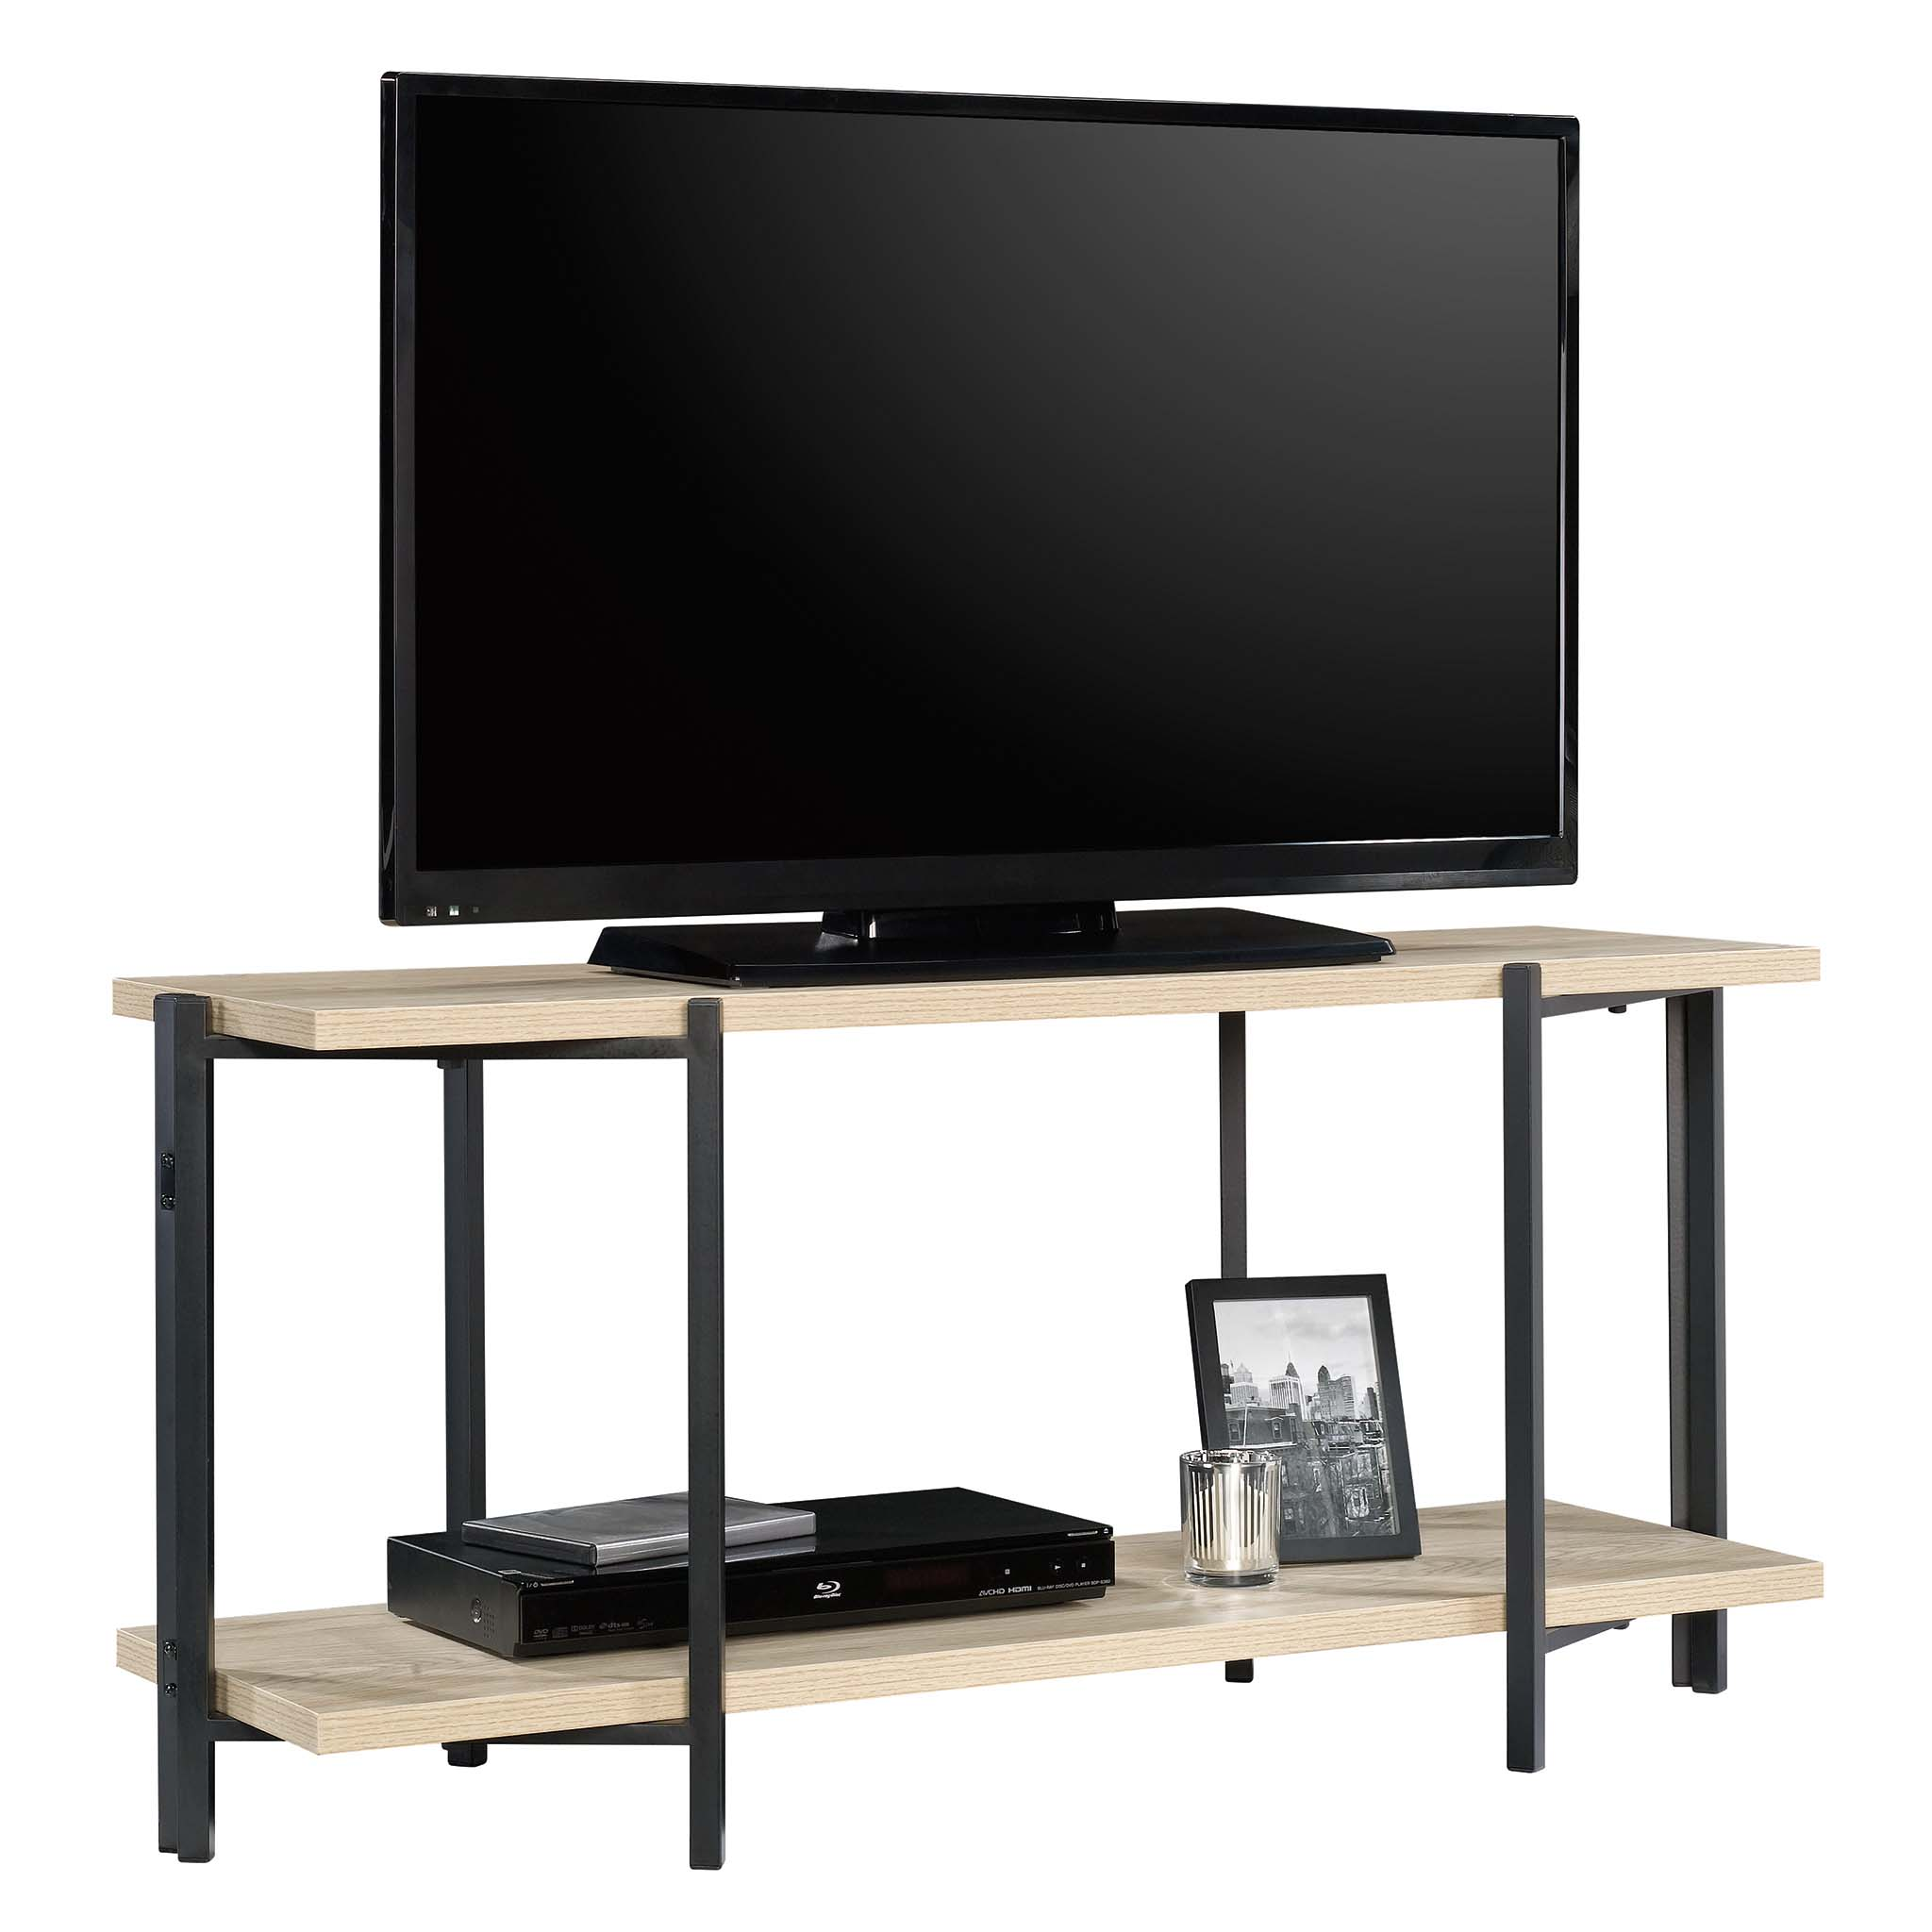 Mainstays No Tools TV Stand, Natural Wood Finish